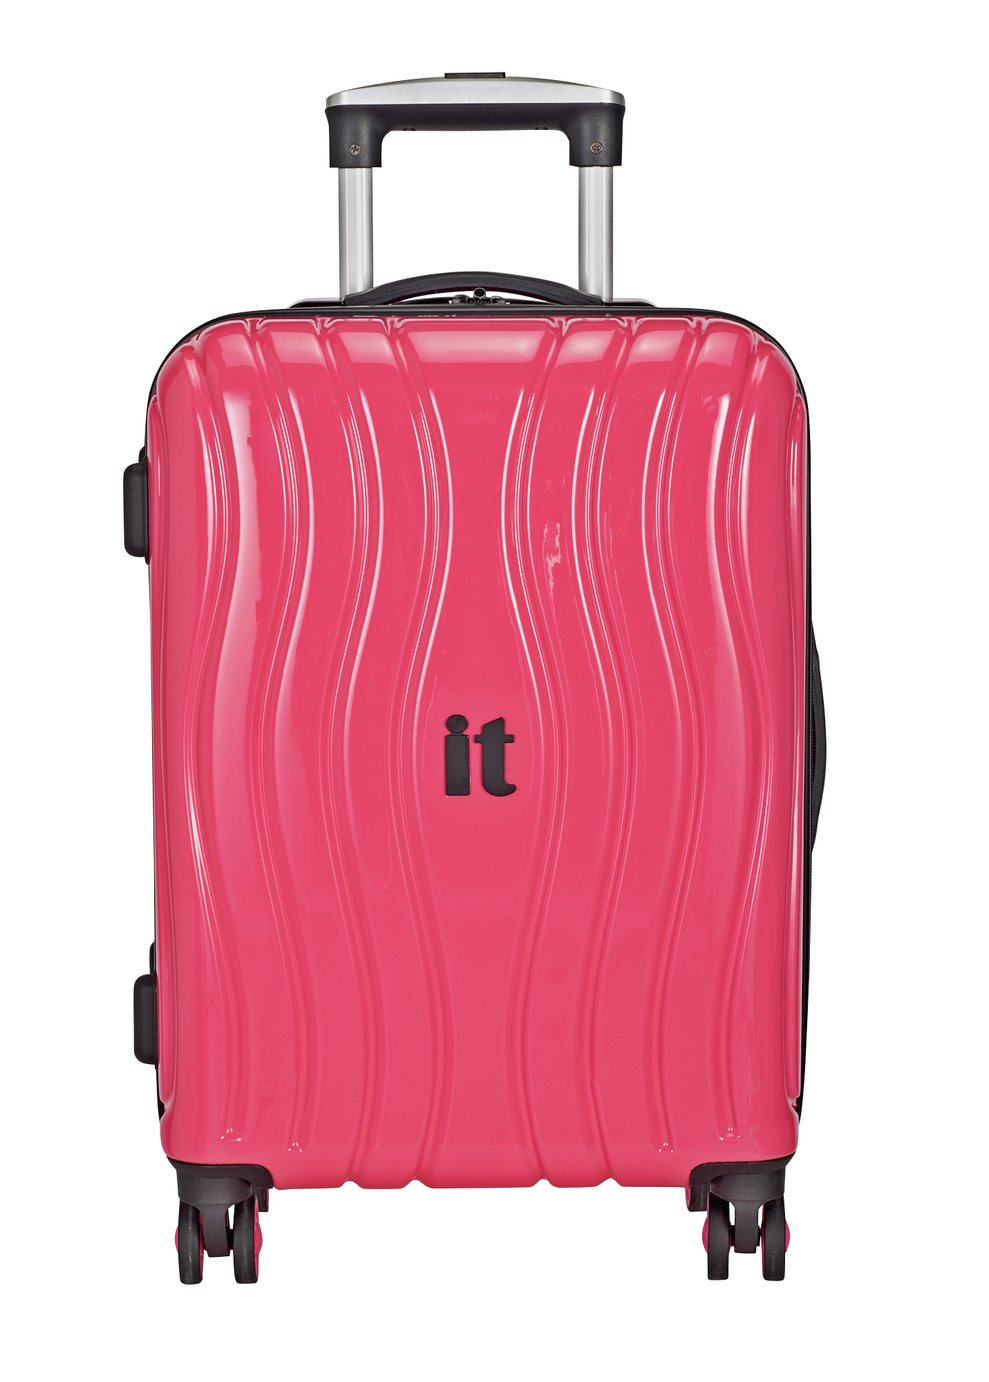 IT Luggage Medium 8 Wheel Hard Suitcase - Metallic Pink